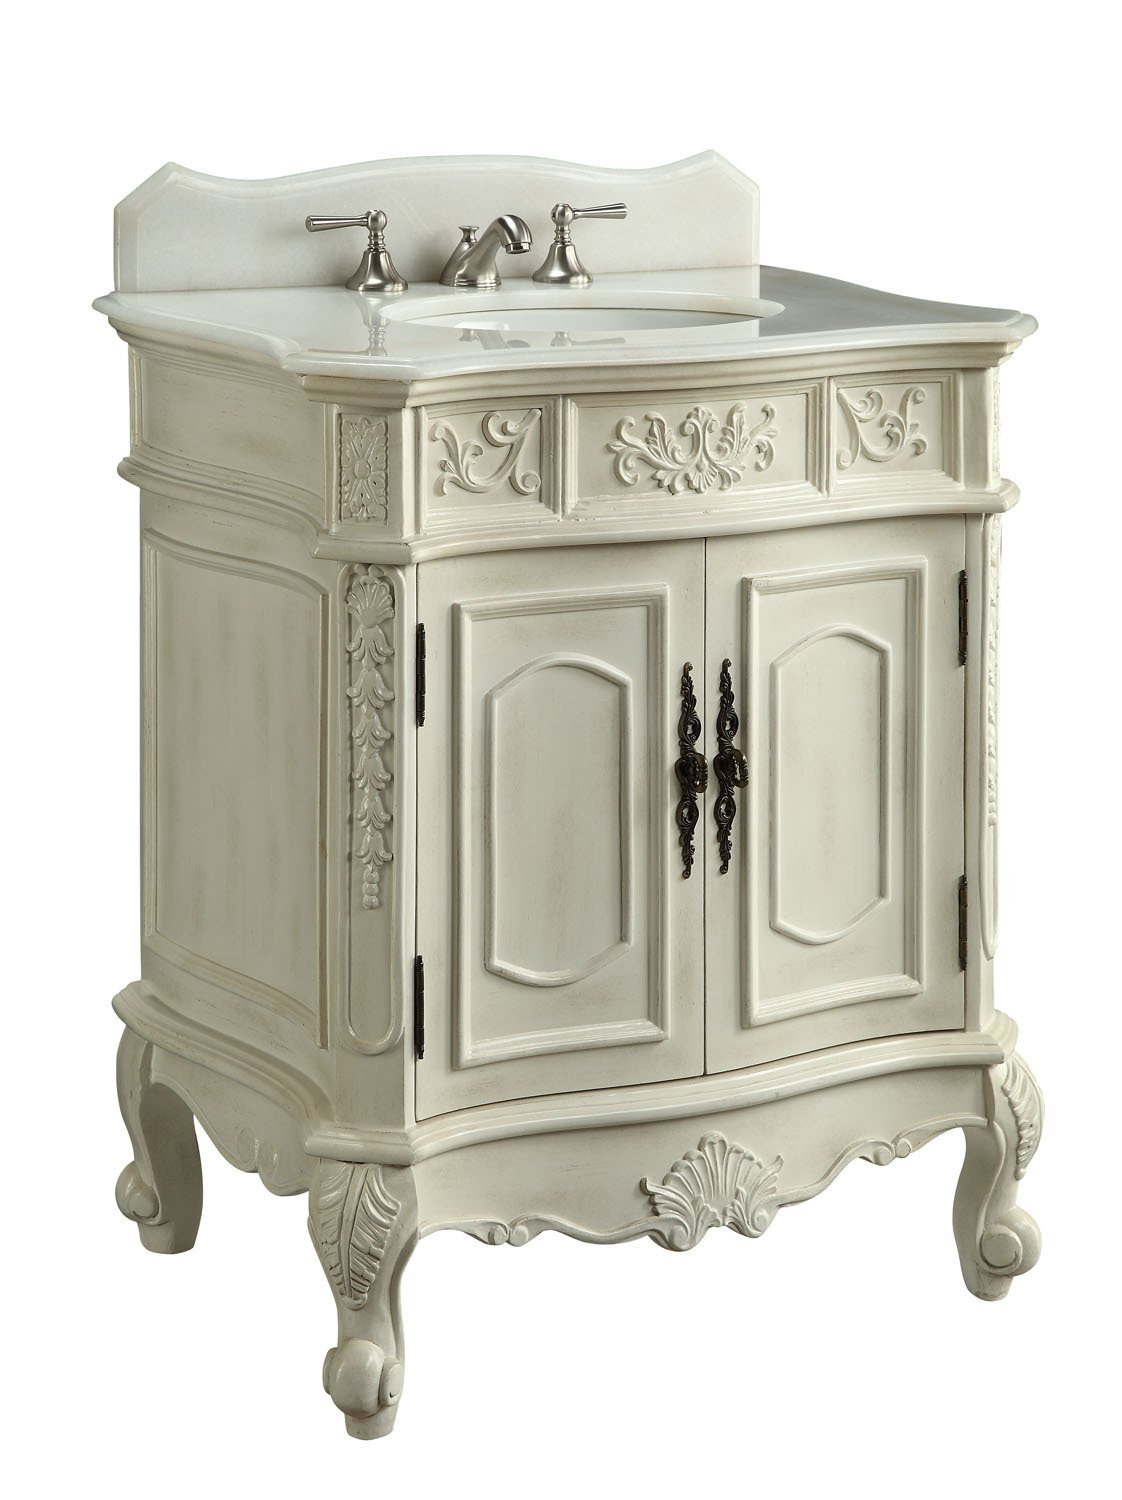 adelina 30 inch antique white single sink bathroom vanity, antique